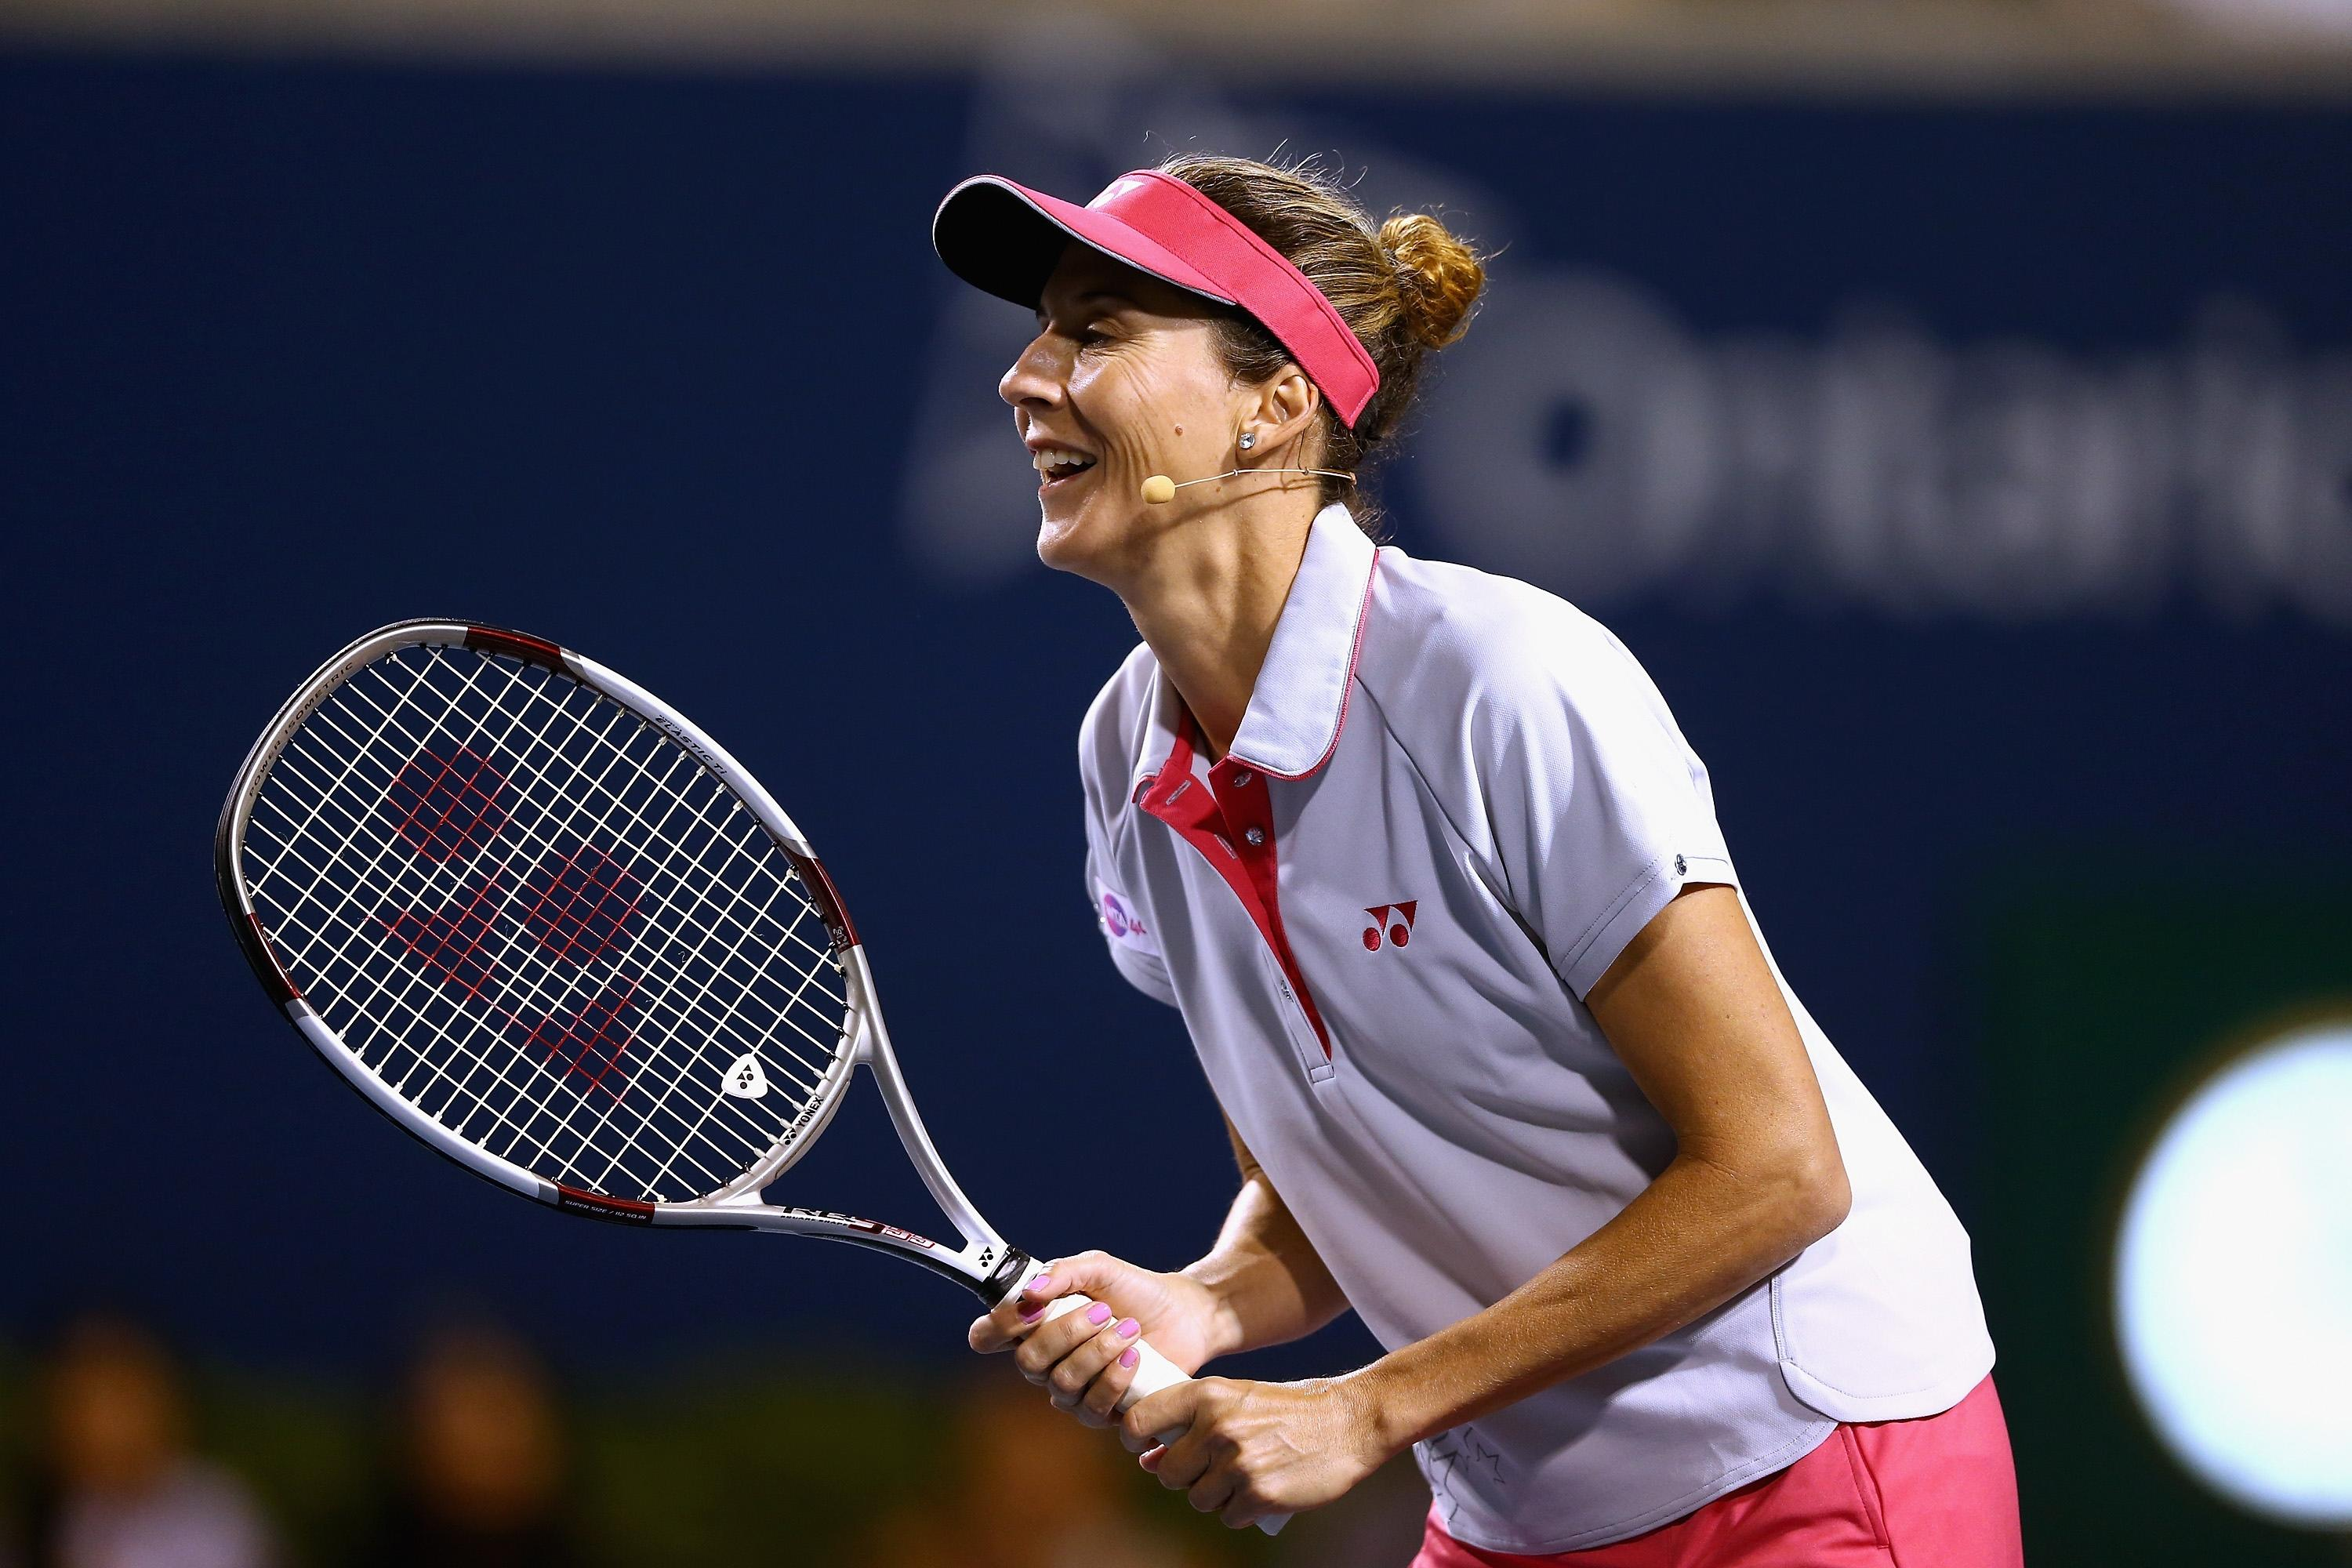 Monica Seles on her long battle with Binge Eating Disorder